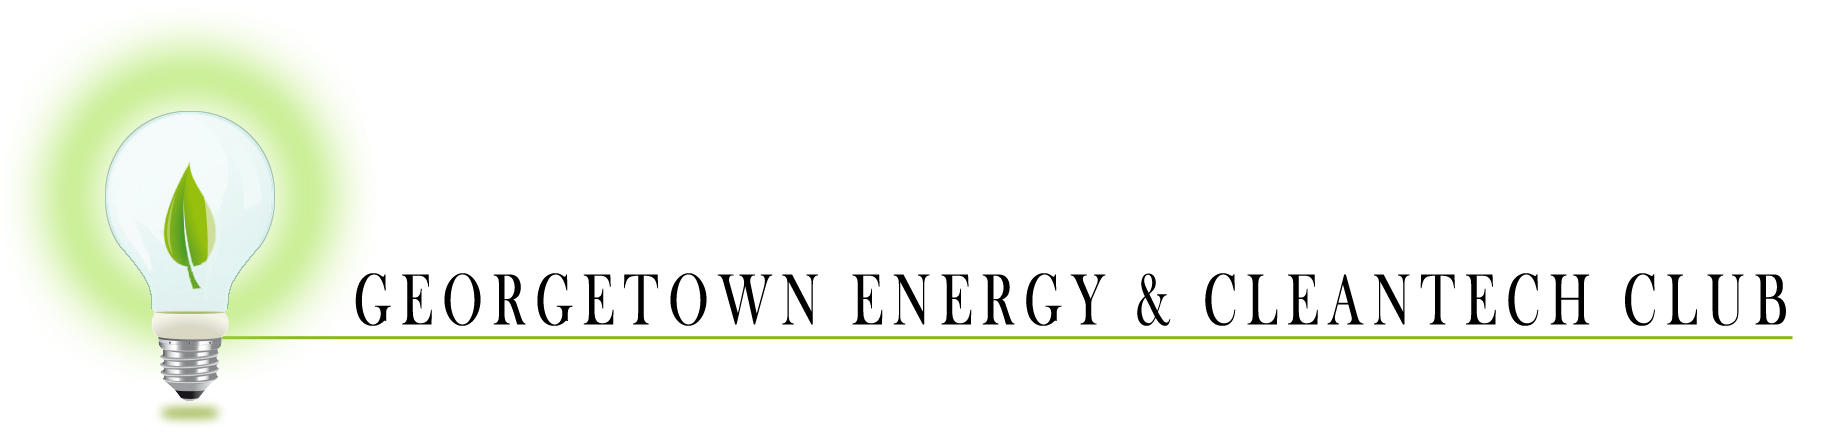 Georgetown Energy & Cleantech Club logo